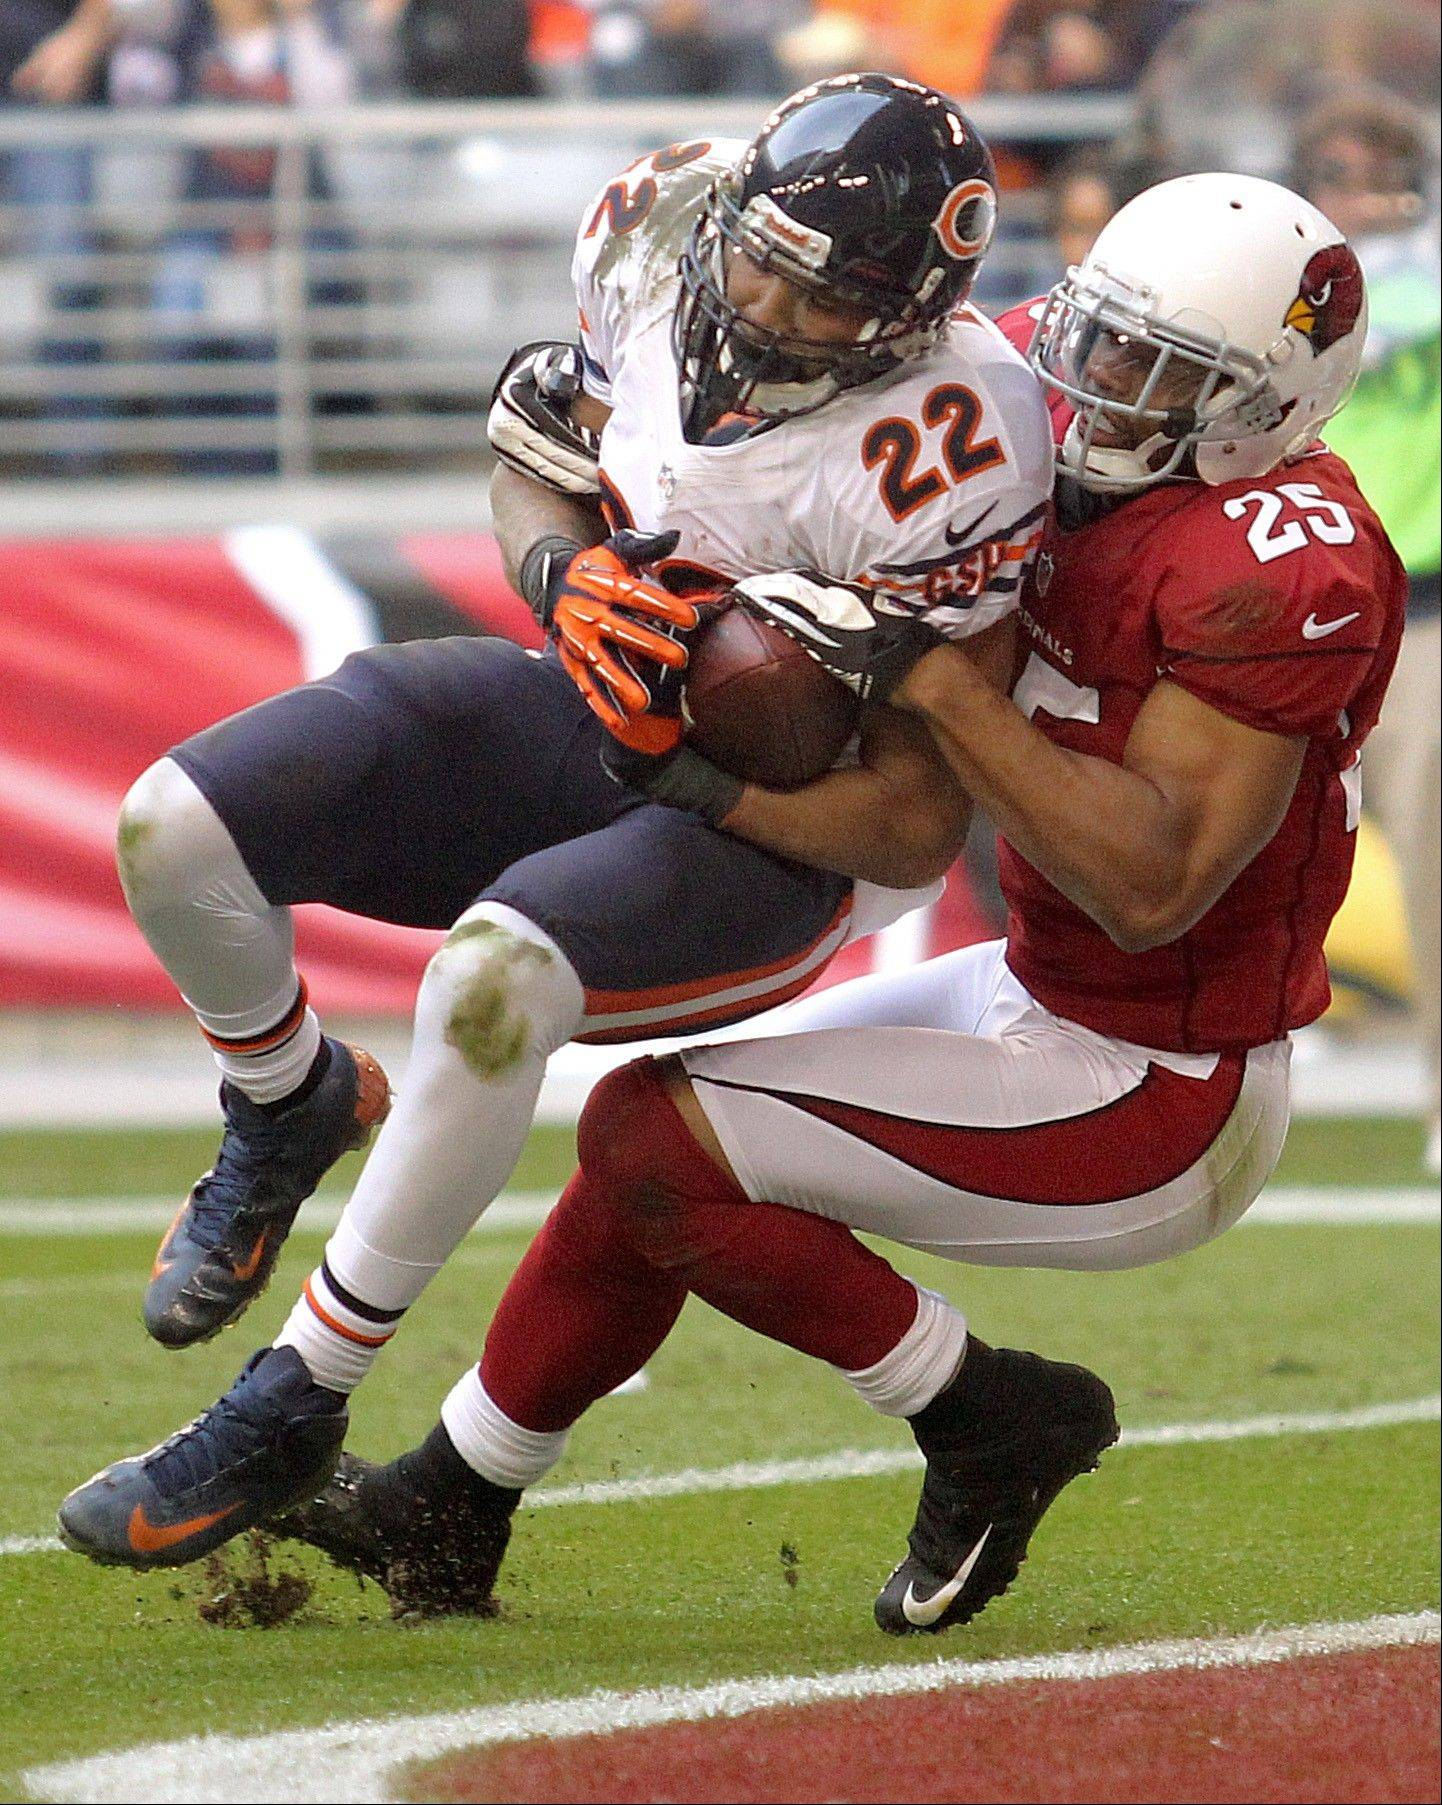 Chicago Bears running back Matt Forte scores a touchdown as Arizona Cardinals free safety Kerry Rhodes defends during the first half.